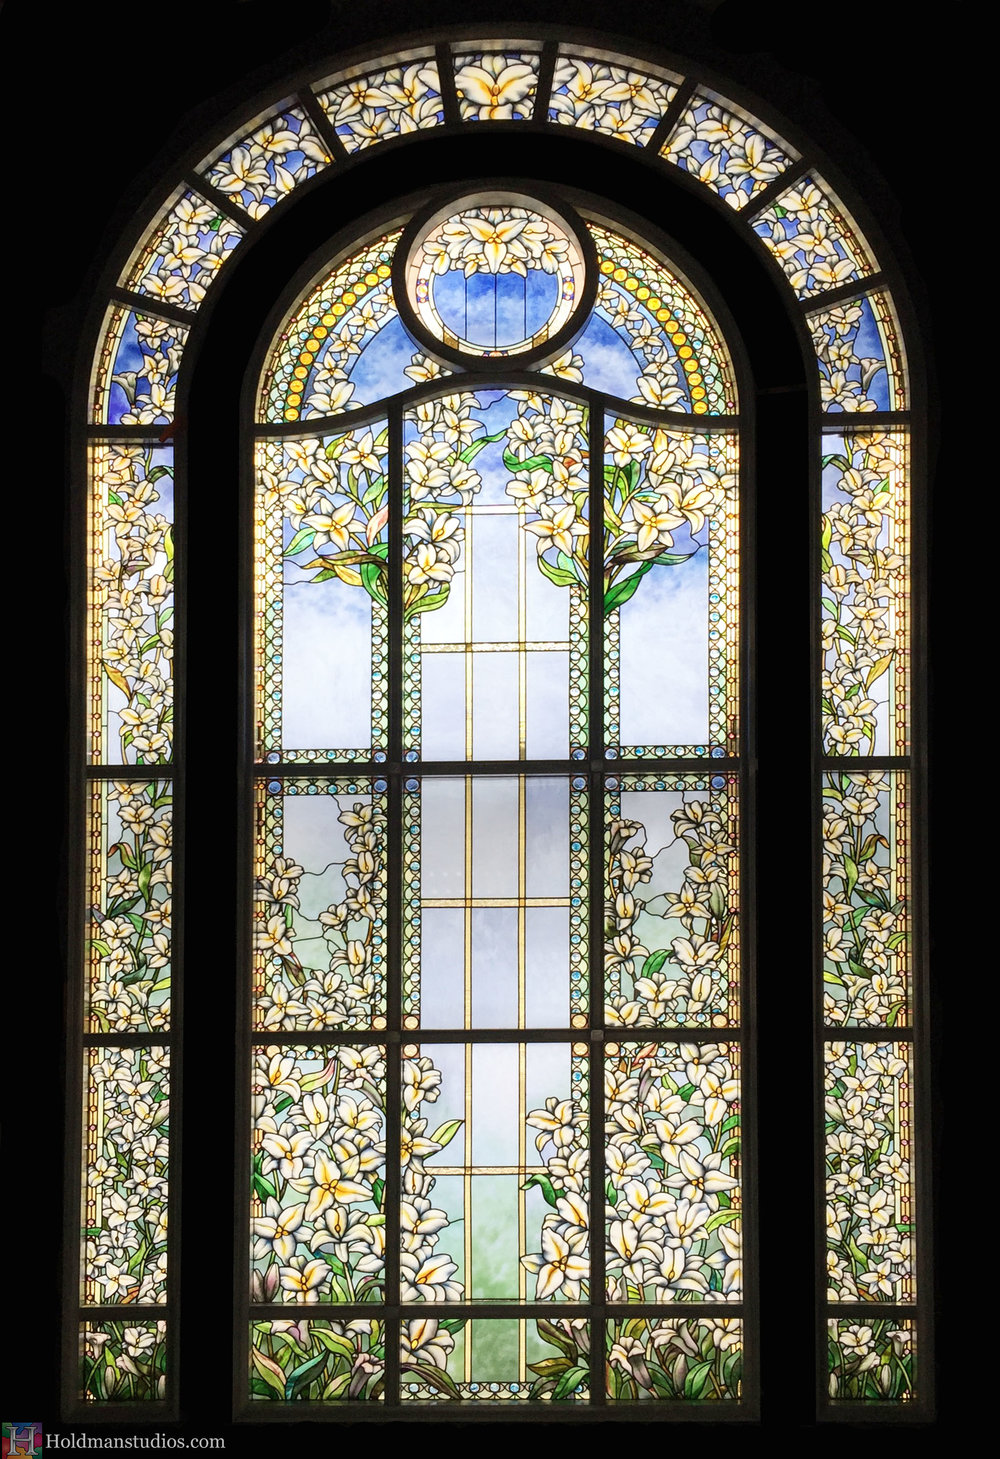 Holdman-Studios-Paris-LDS-Temple-Stained-Glass-Madonna-Lily-Flowers-Leaves-Sun-Moon-Stars-Full-Window.jpg